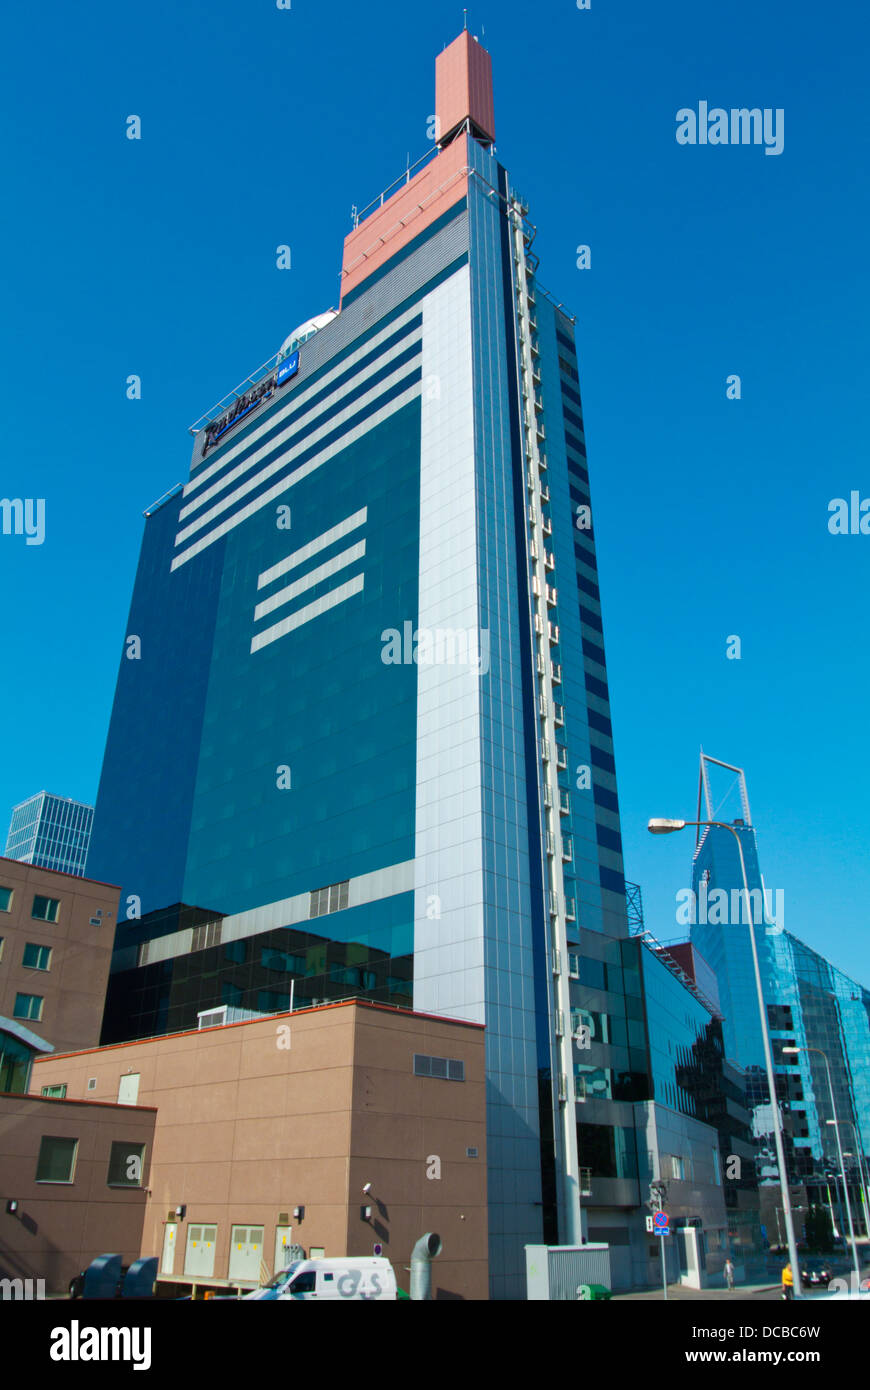 Radisson blu hotel Tallinn city business district Tallinn Estonia the Baltics Europe - Stock Image